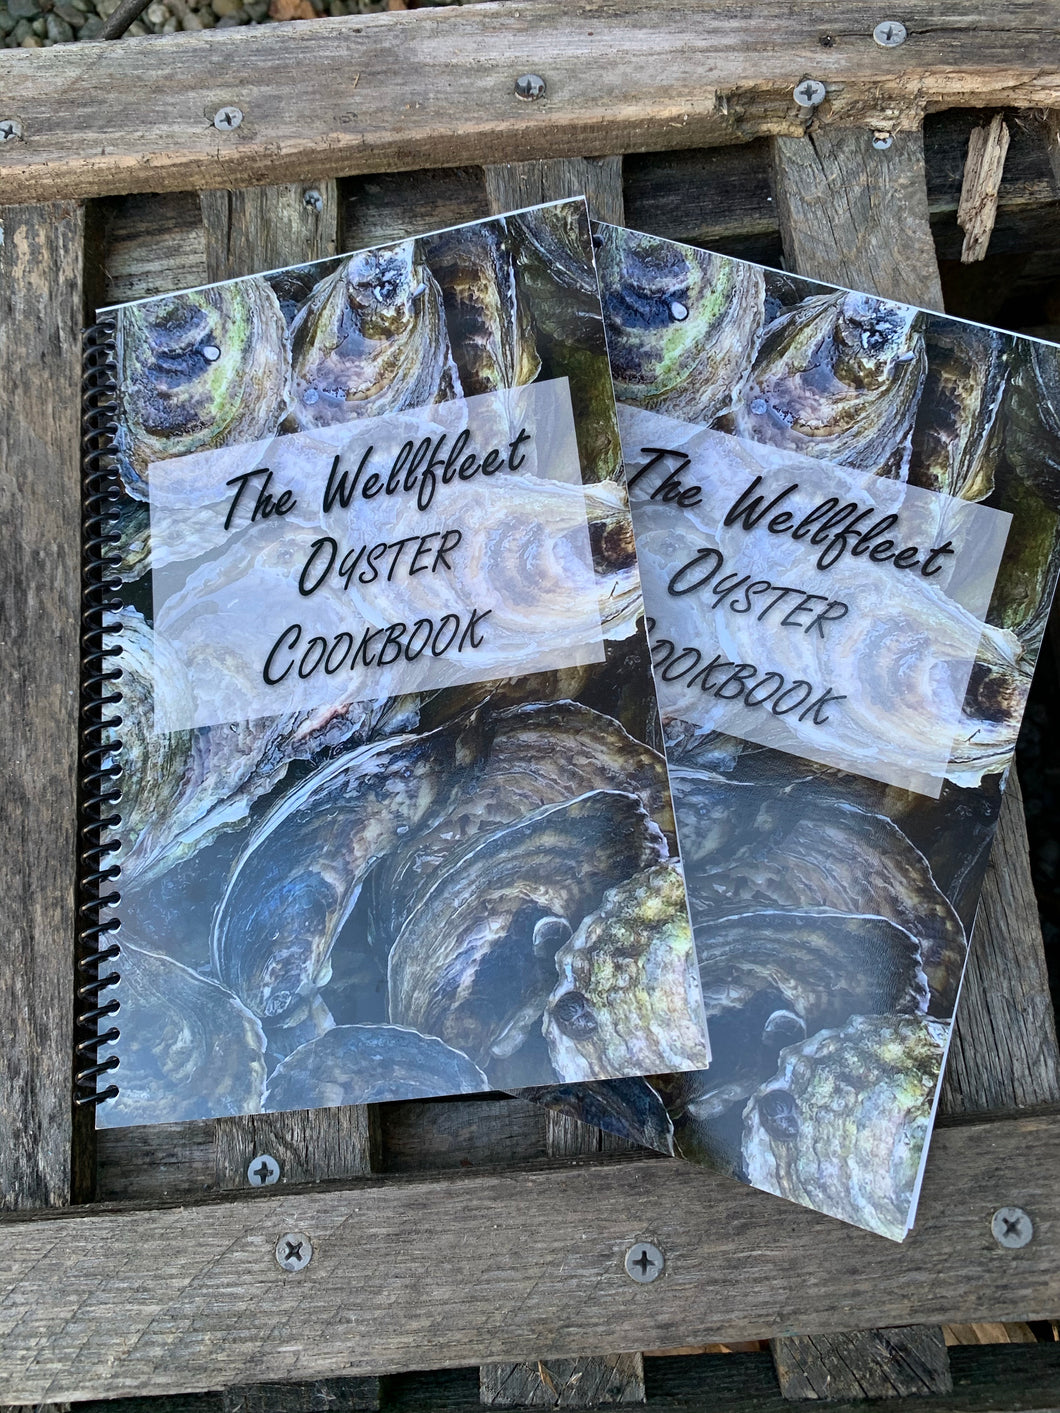 Wellfleet oyster cookbook